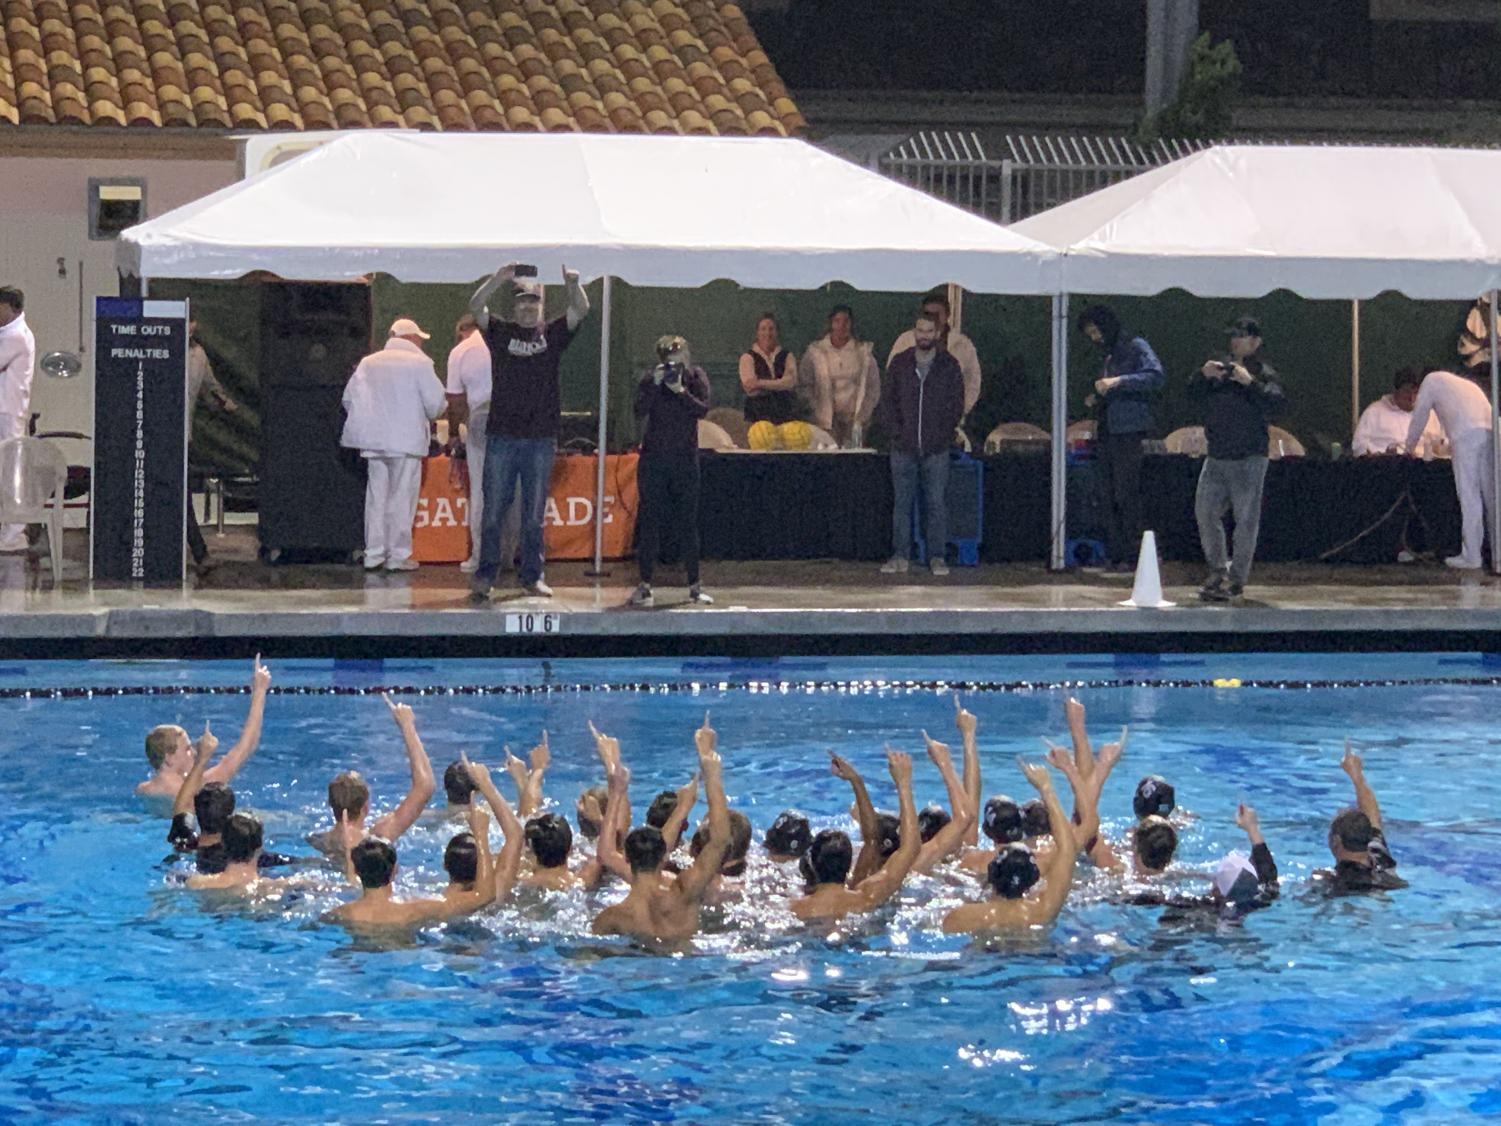 The triumphant Knight's jumped in the pool to celebrate their success. PC: Sepi Arrowsmith